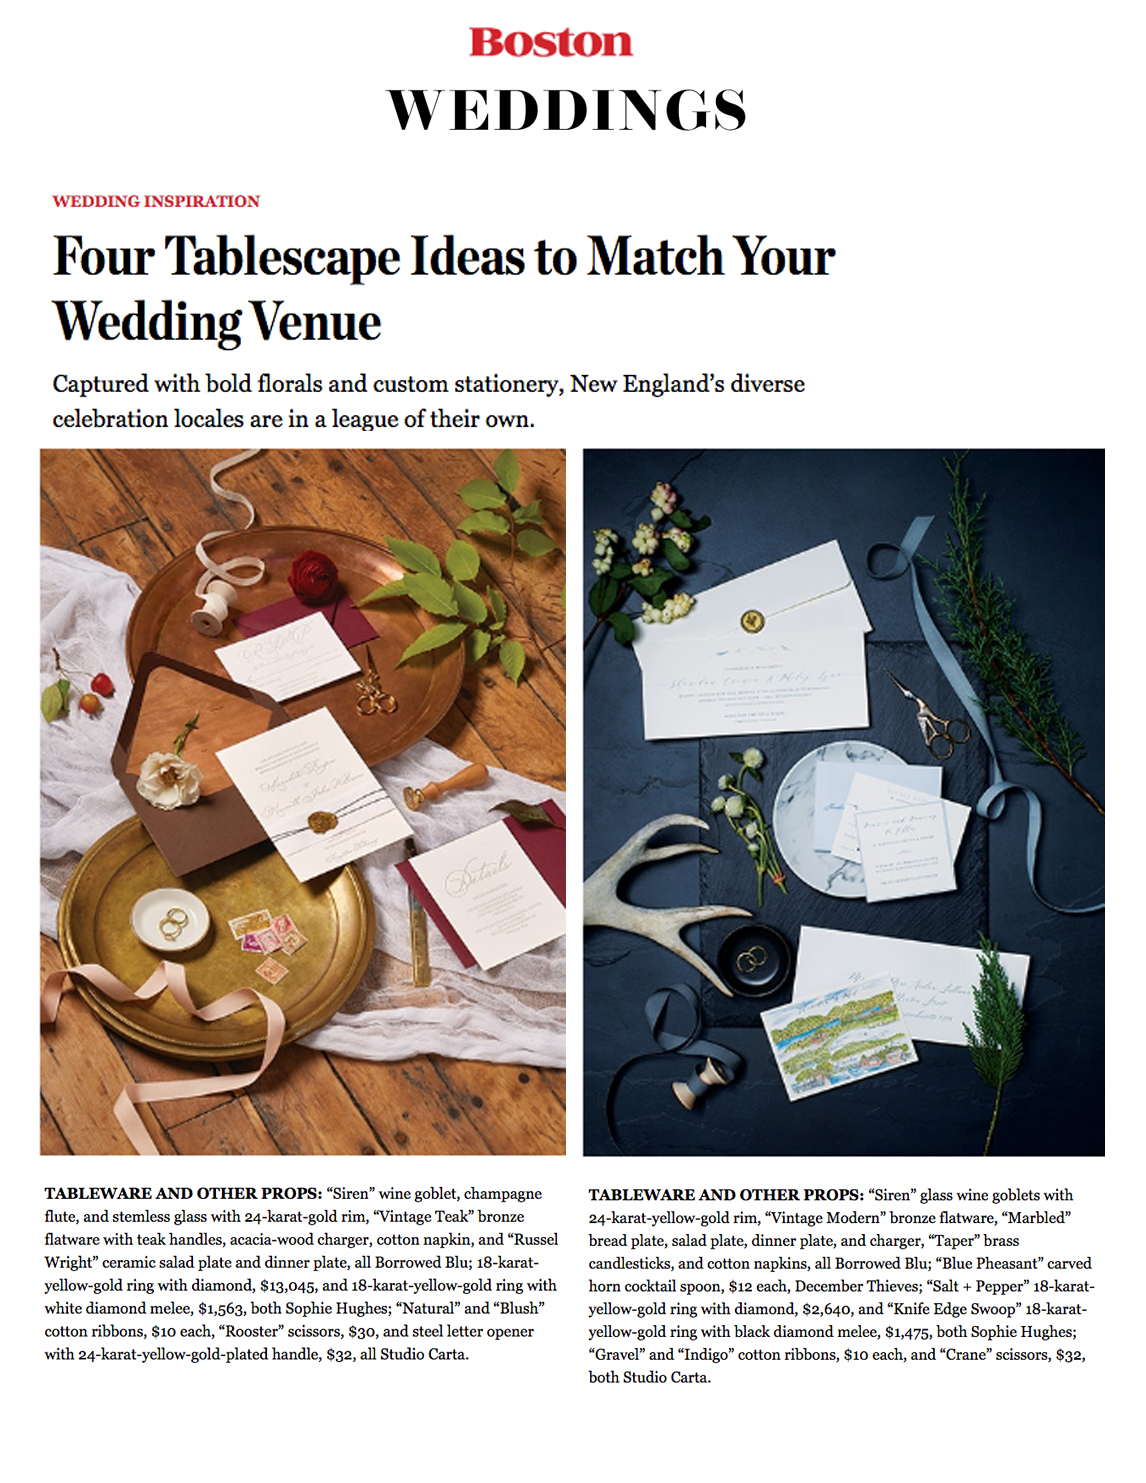 BostonMag_FourTablescapingWedding_Dec_2018.jpg